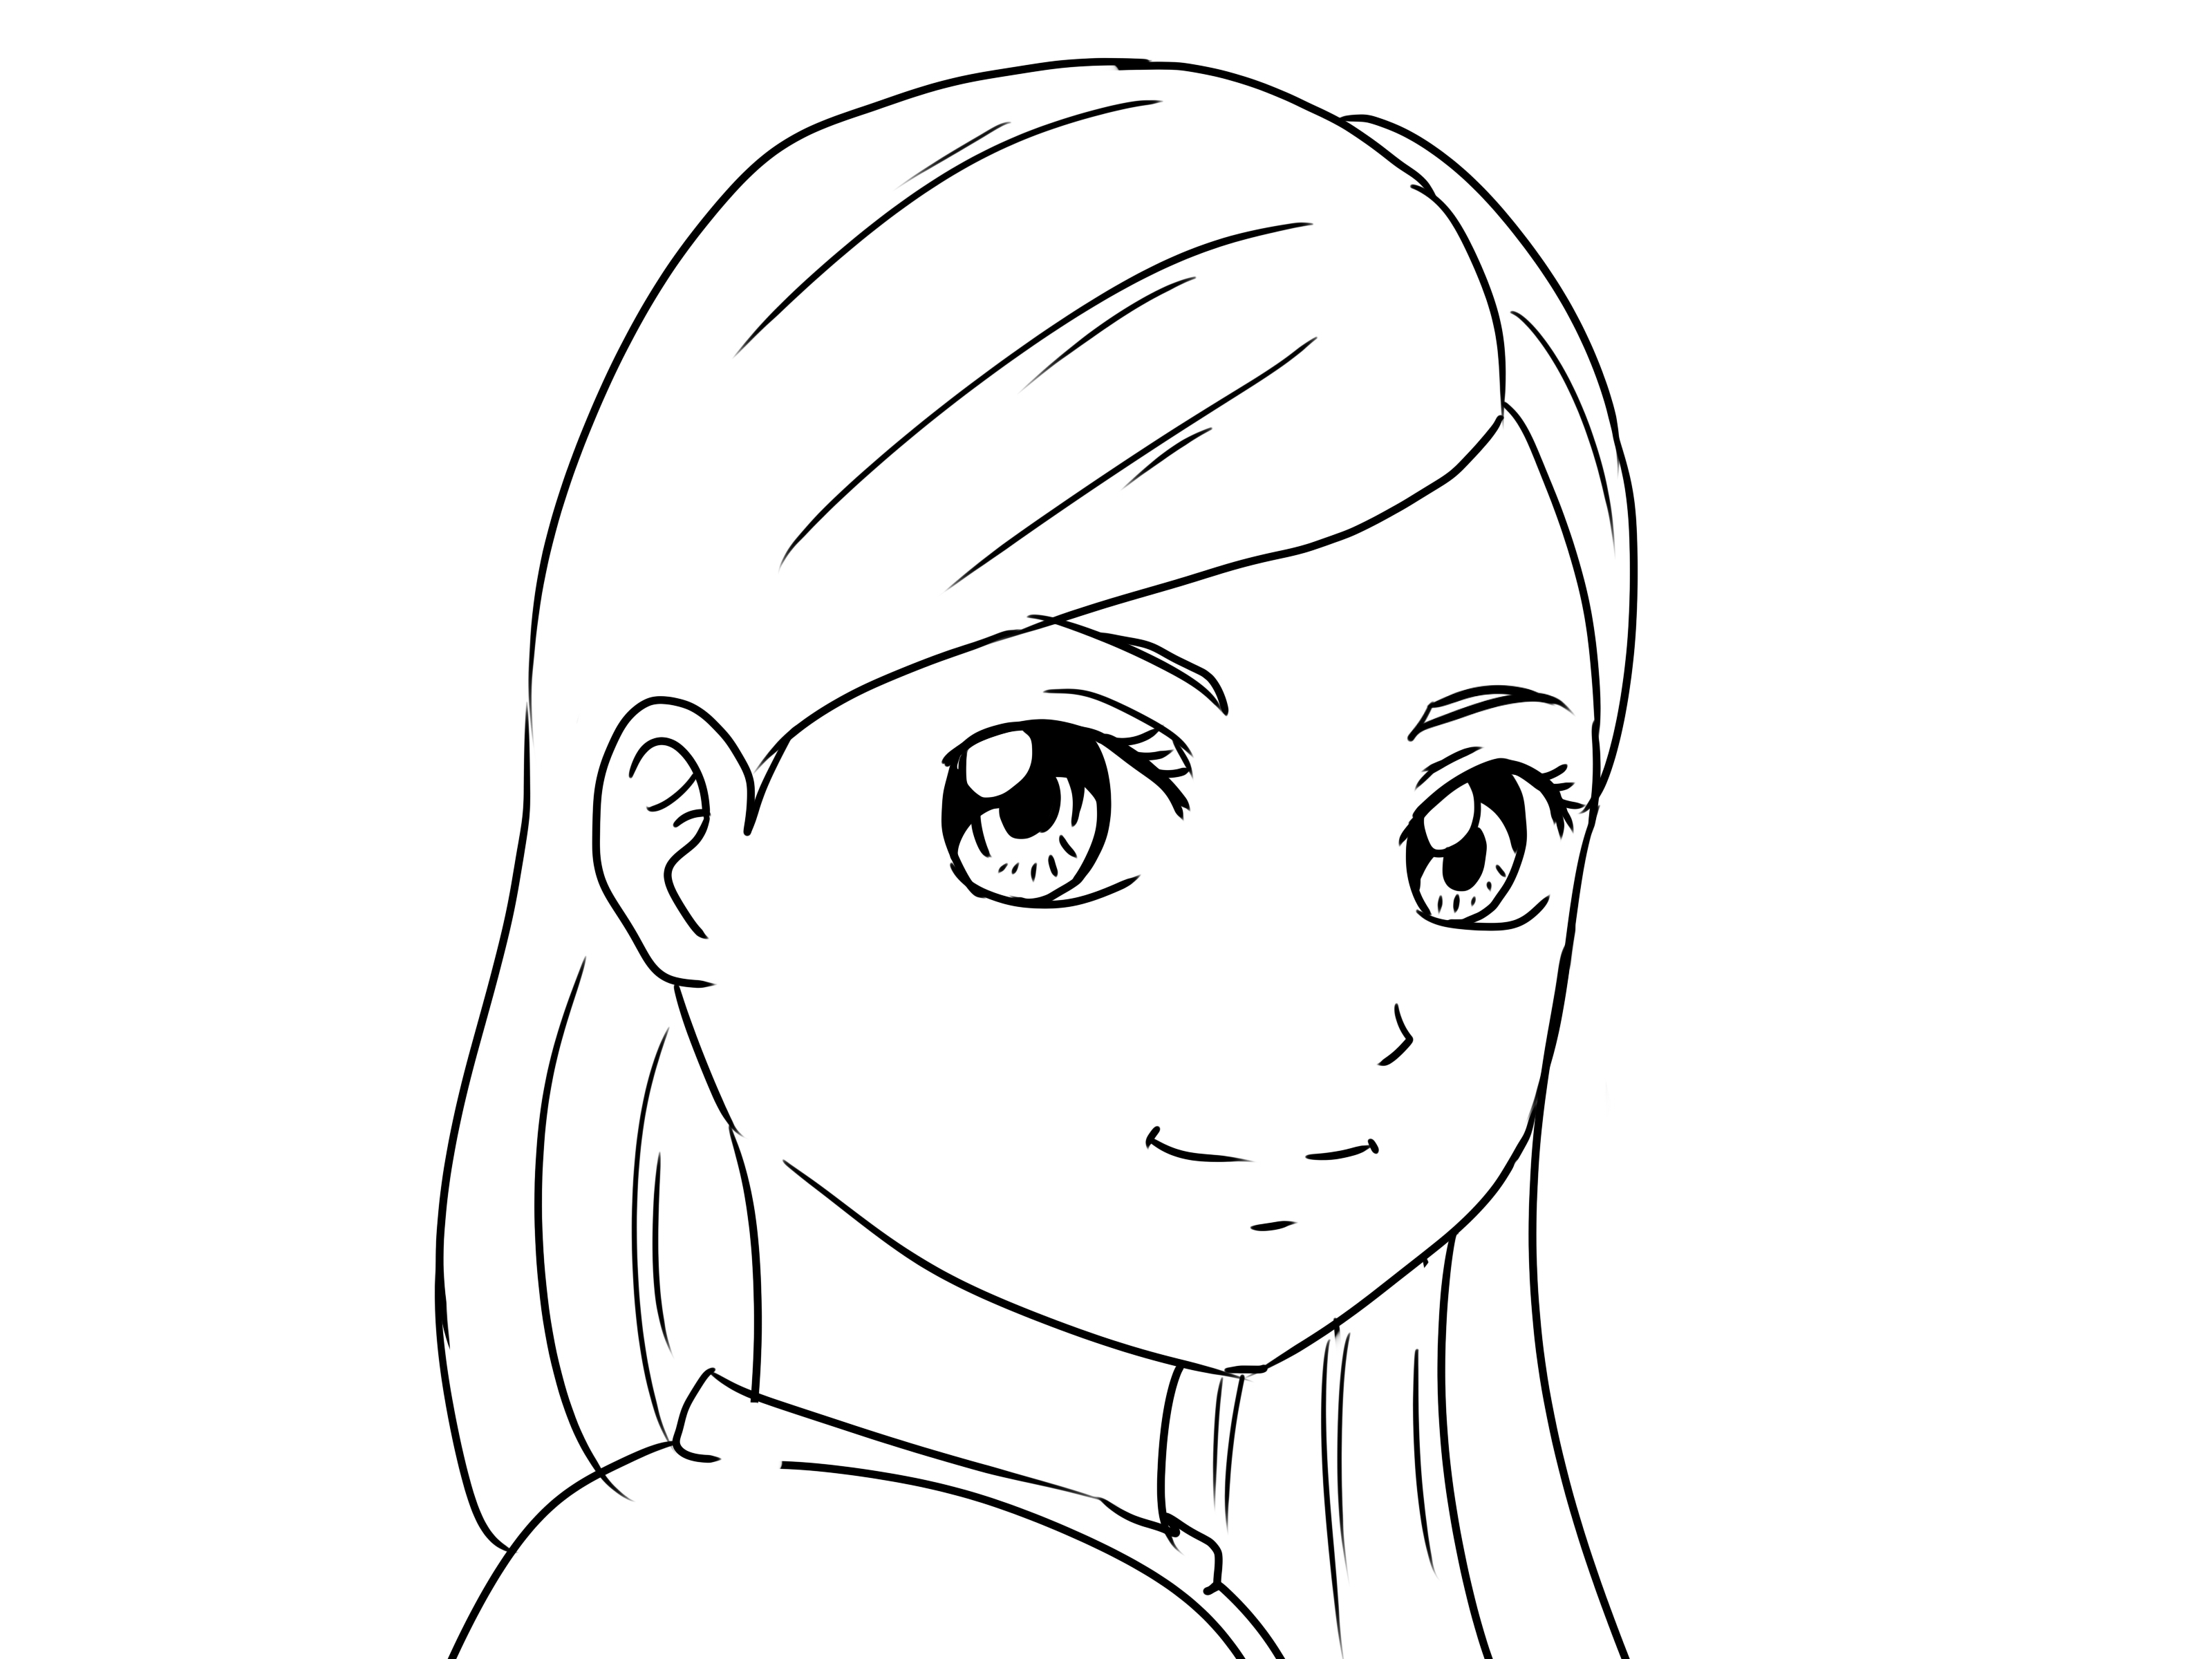 3200x2400 Outline Drawing Of Boy And Girl How To Draw Yourself As A Manga